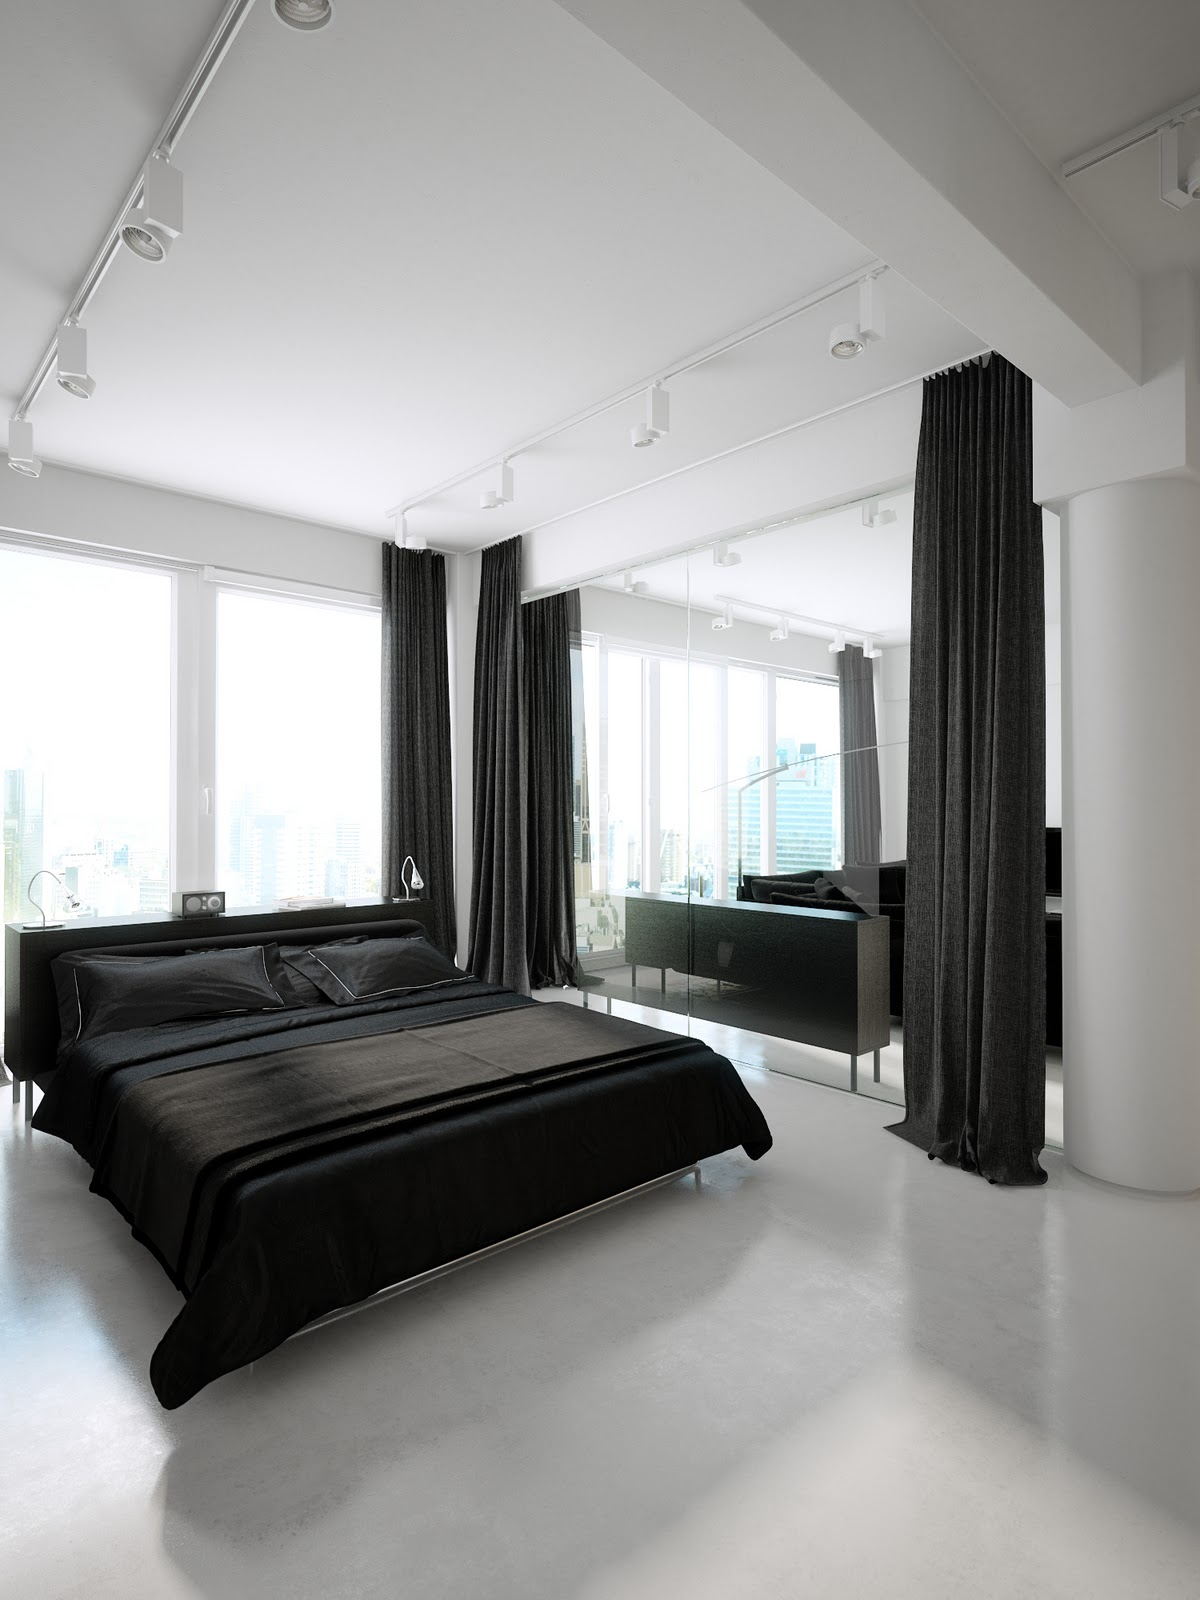 Black and white bedroom interior design ideas for Bedroom images interior designs